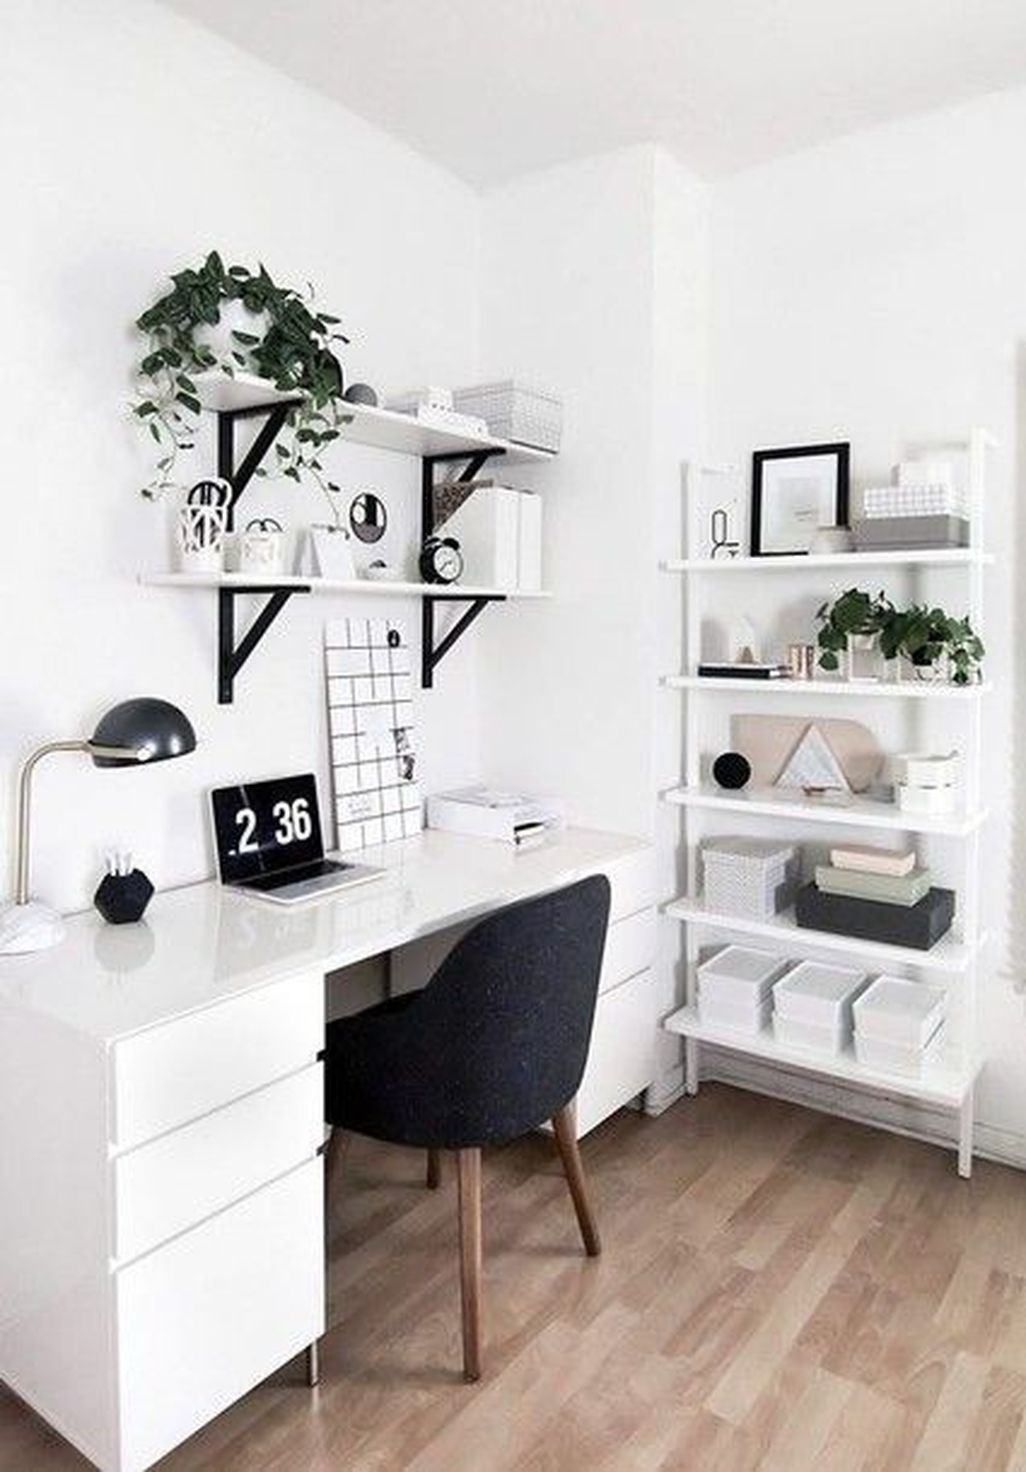 Awesome 47 Adorable Minimalist Home Decor Ideas On A Budget. More at ...